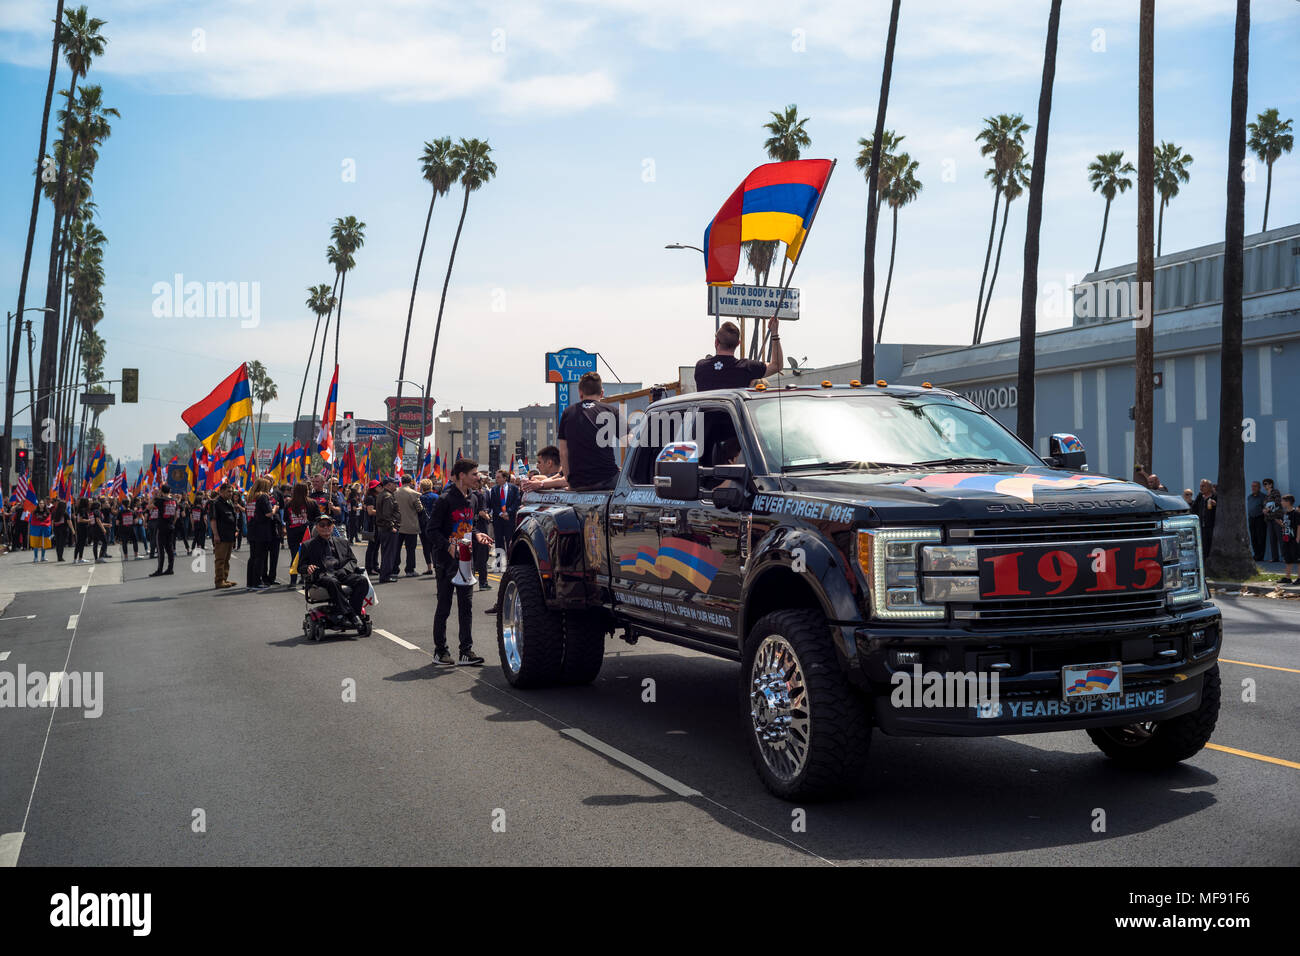 Los Angeles, USA. 24th April 2018. Thousands march in Los Angeles to mark 103rd Anniversary of Armenian Genocide Credit: Nick Savander/Alamy Live News Stock Photo